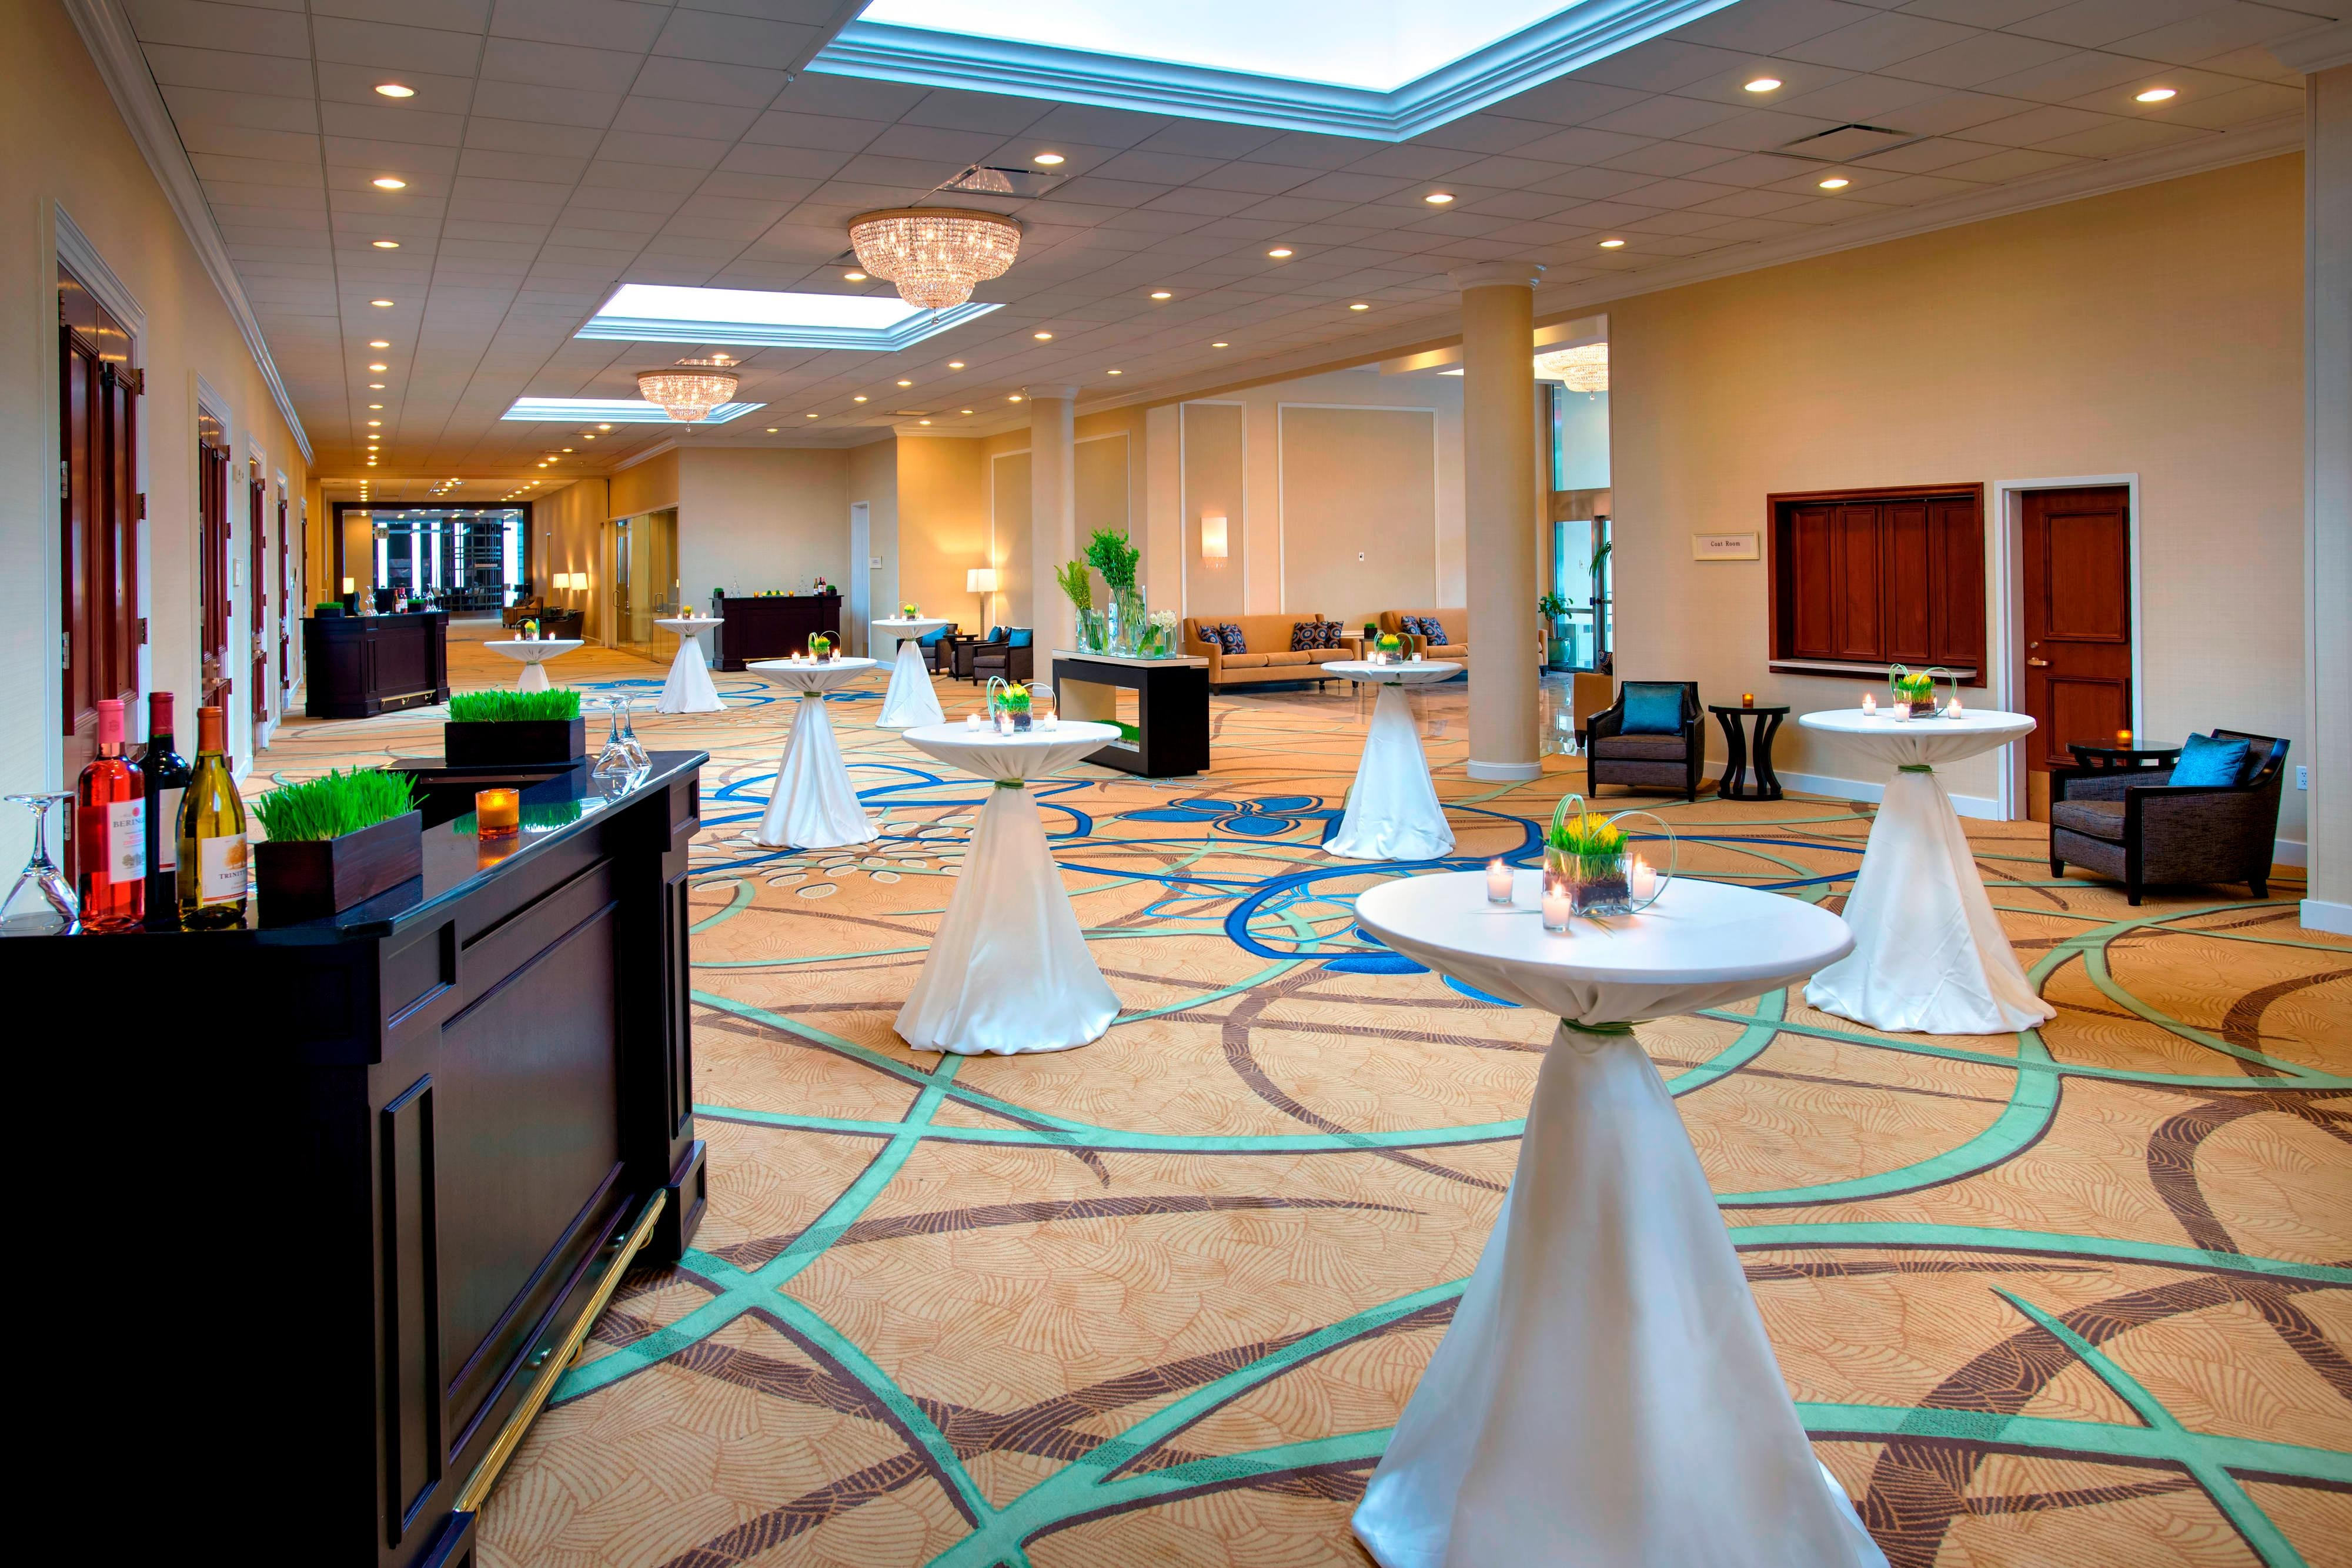 Event Space in Teaneck New Jersey